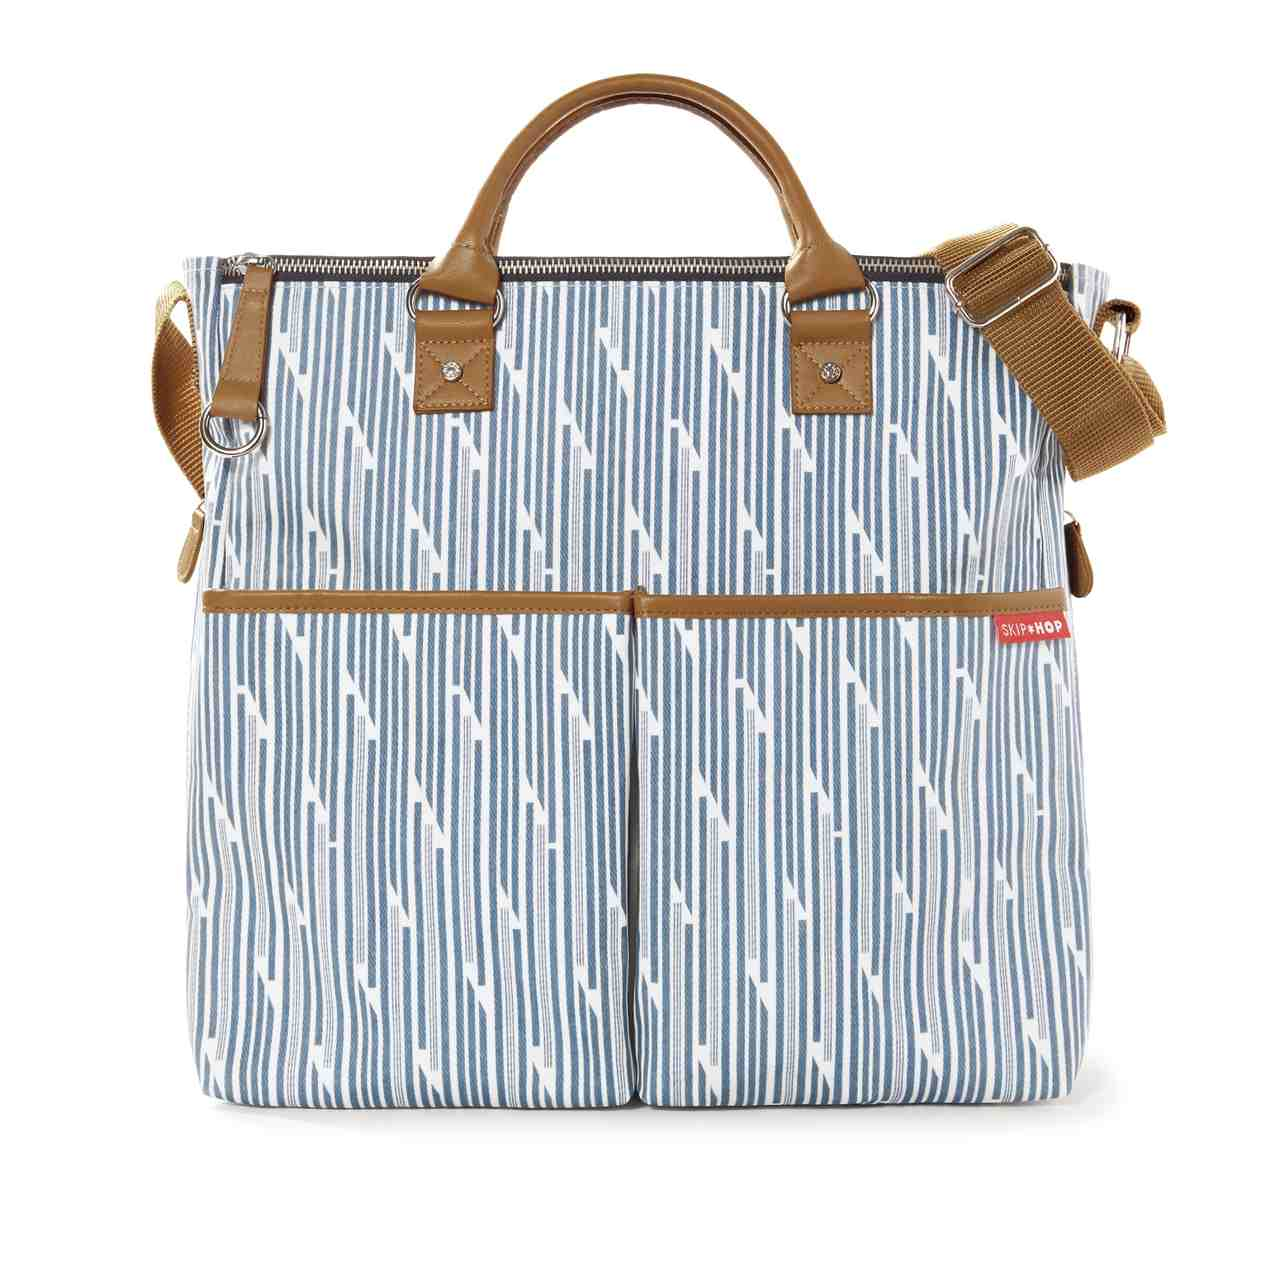 Bolsa Maternidade Skip Hop Duo Limited Edition - Blue Print Stripe